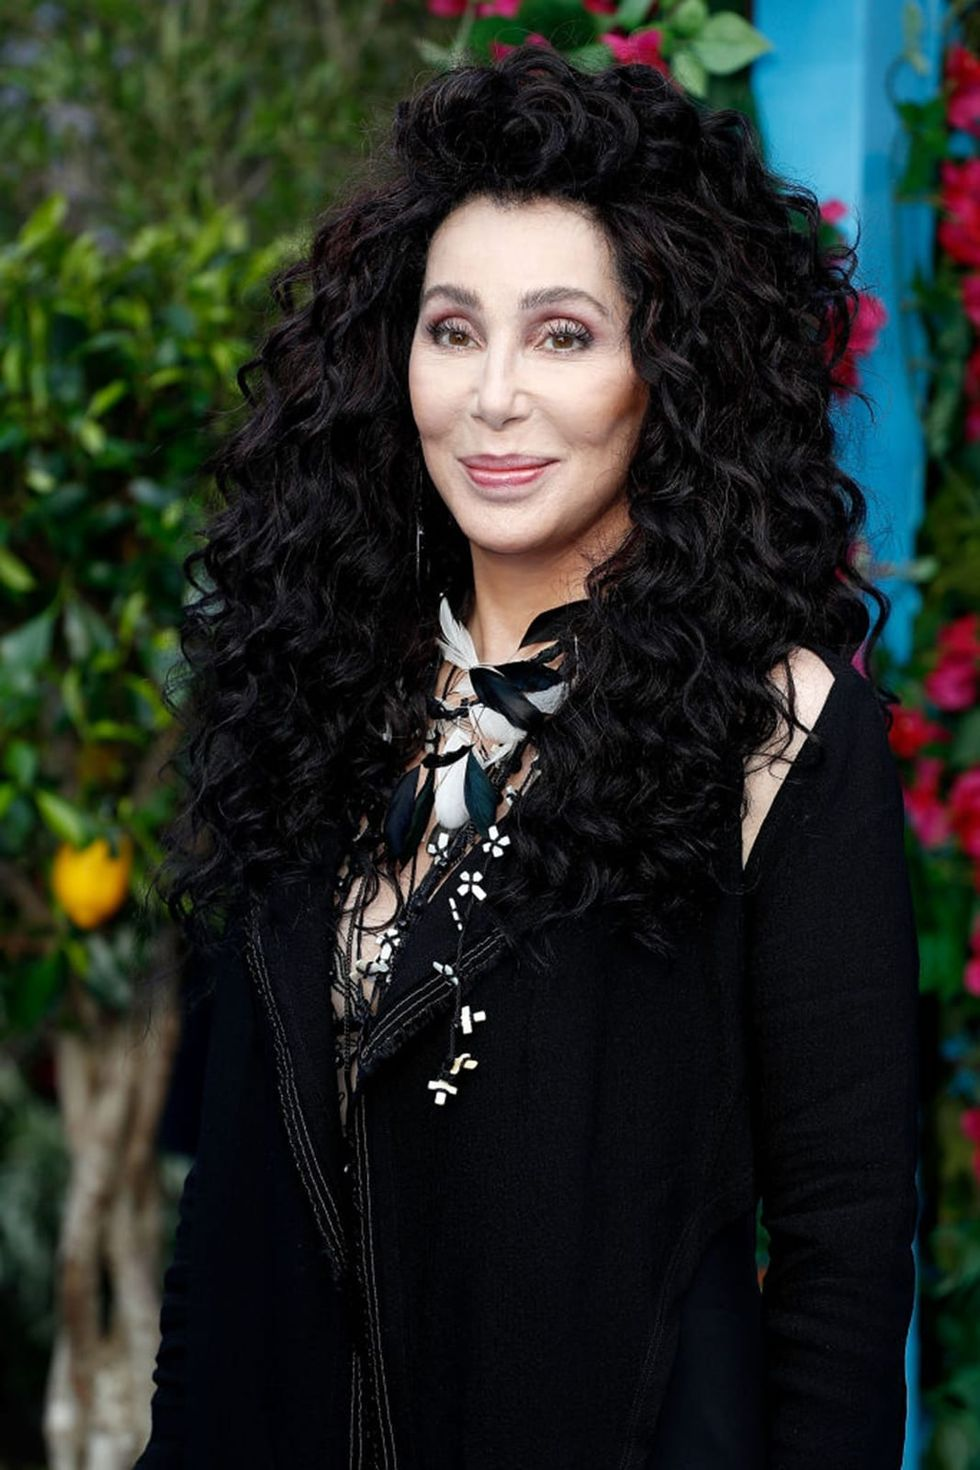 Cher apologizes after being slammed for tweet over George Floyd's death